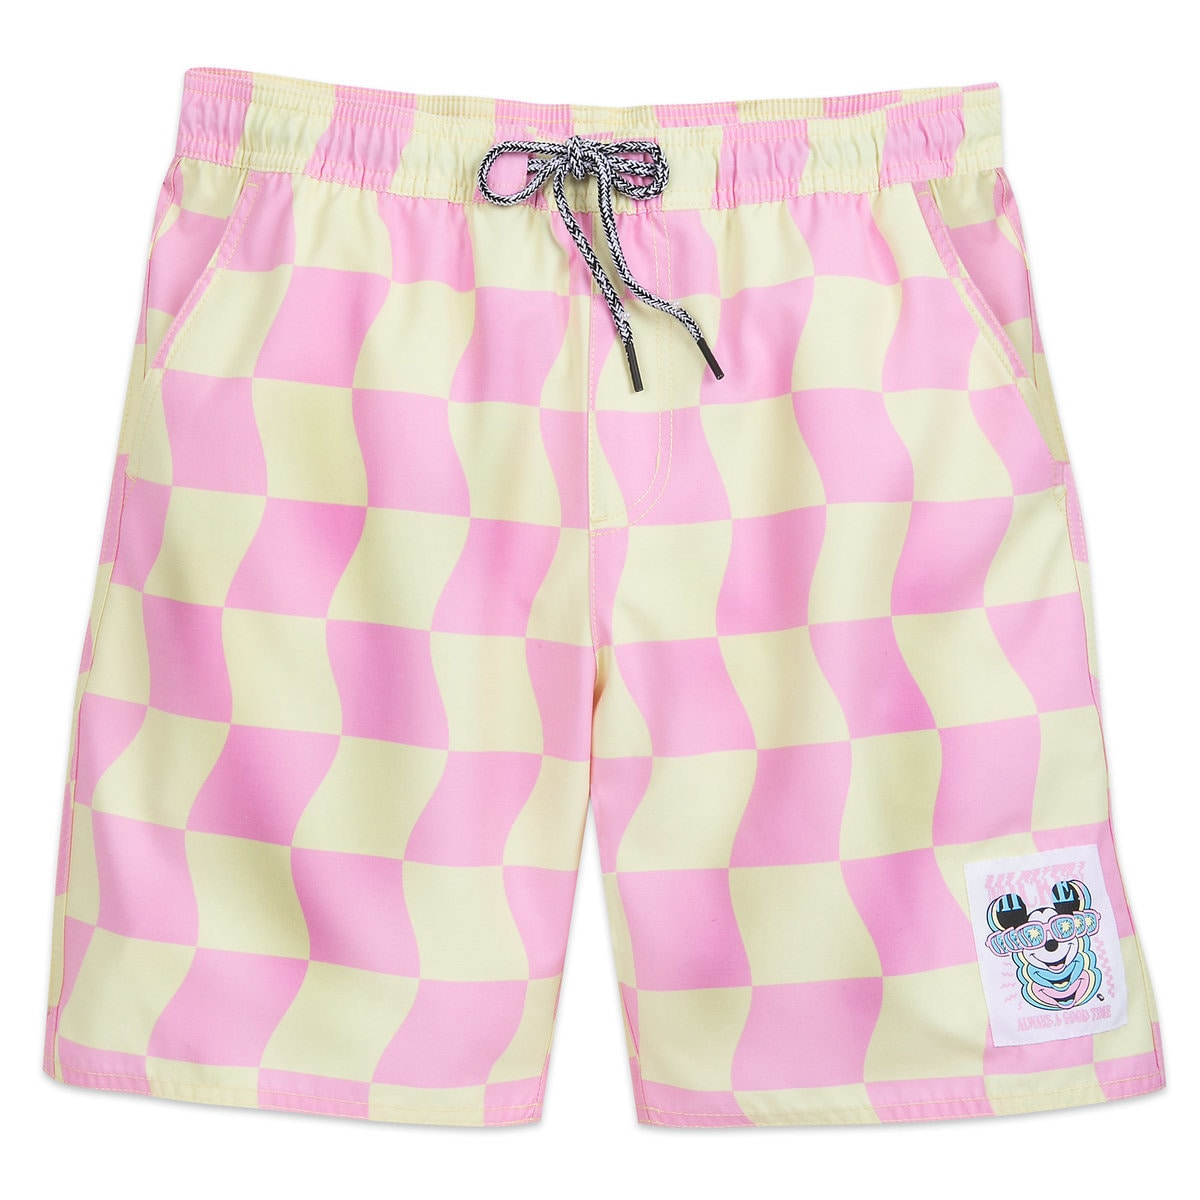 b5b17761b3 Product Image of Mickey Mouse Checkered Swim Trunks for Men by Neff # 1